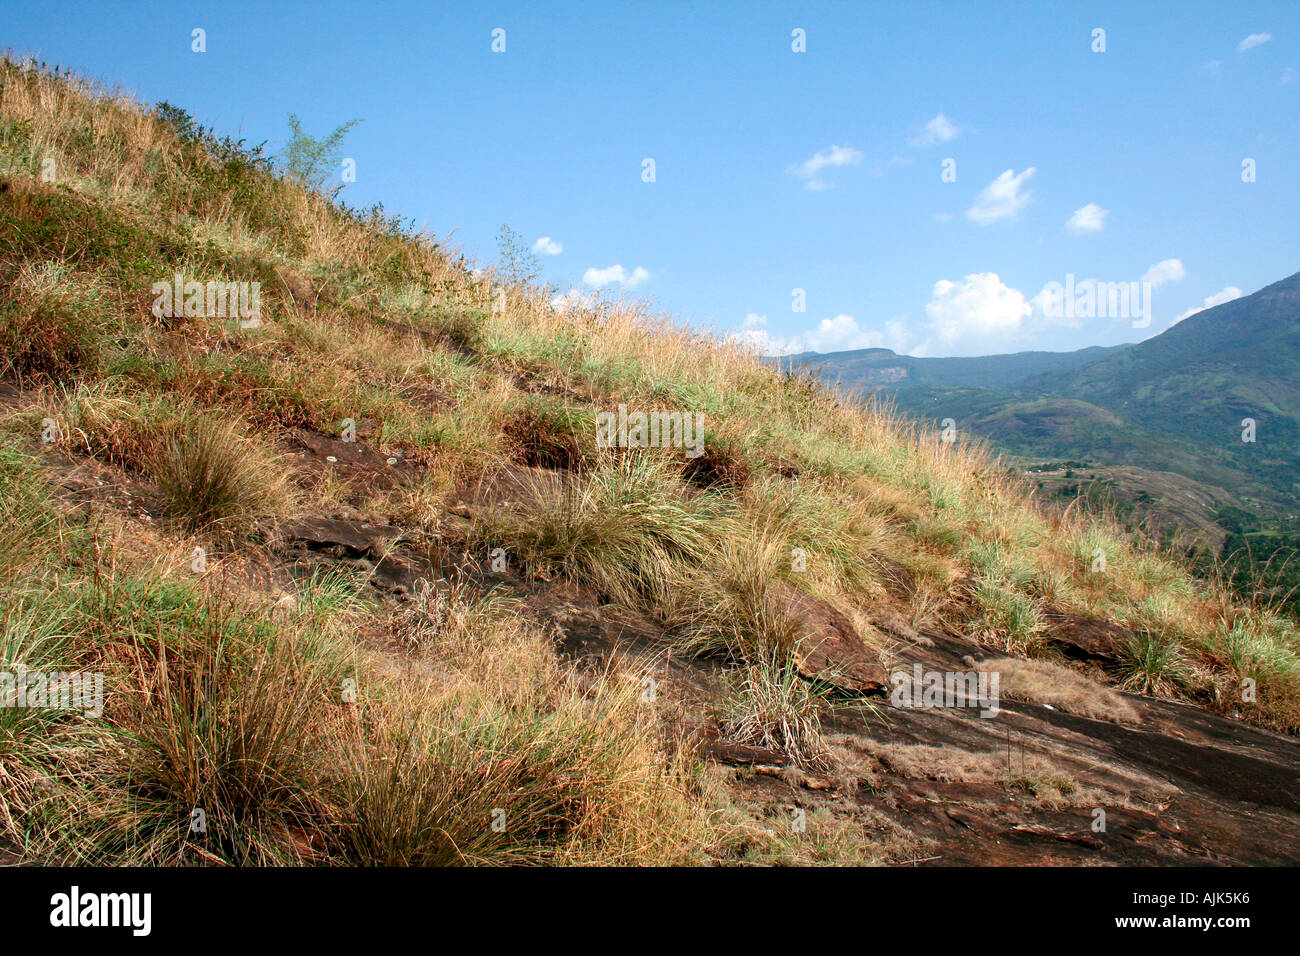 The dry grass on the slope of a hill, Marayoor, Kerala, India - Stock Image